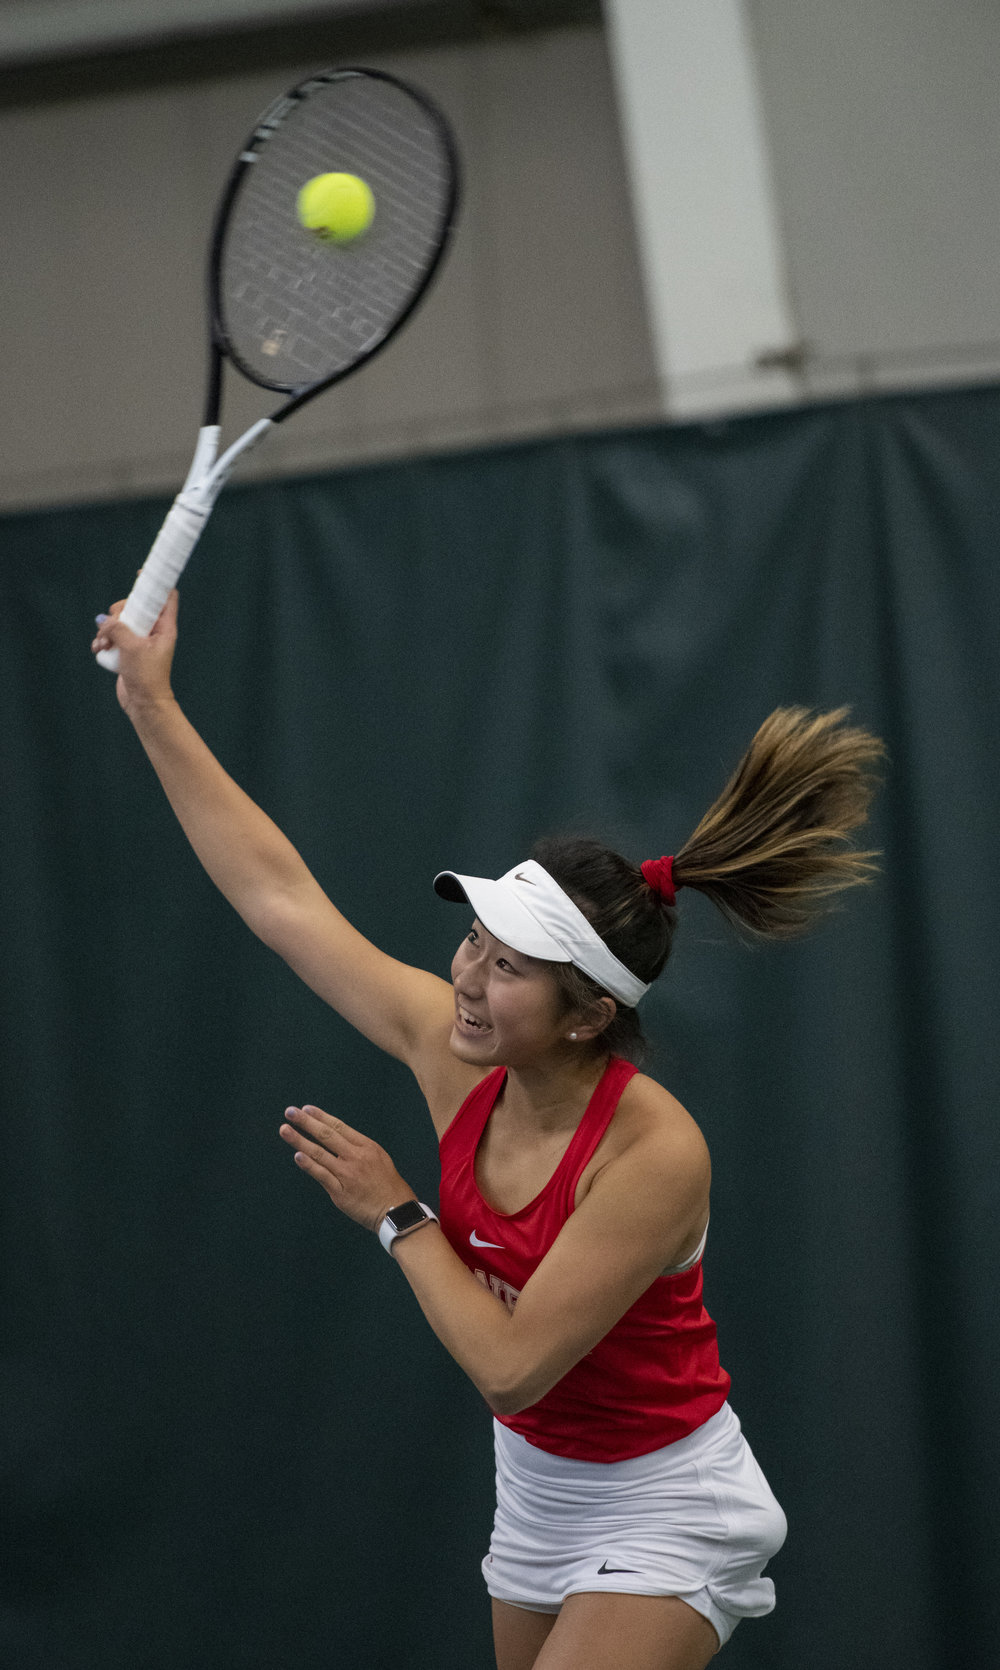 I shot for roughly two hours and I'm pretty sure this is the only ball-on-racket photo of the day.